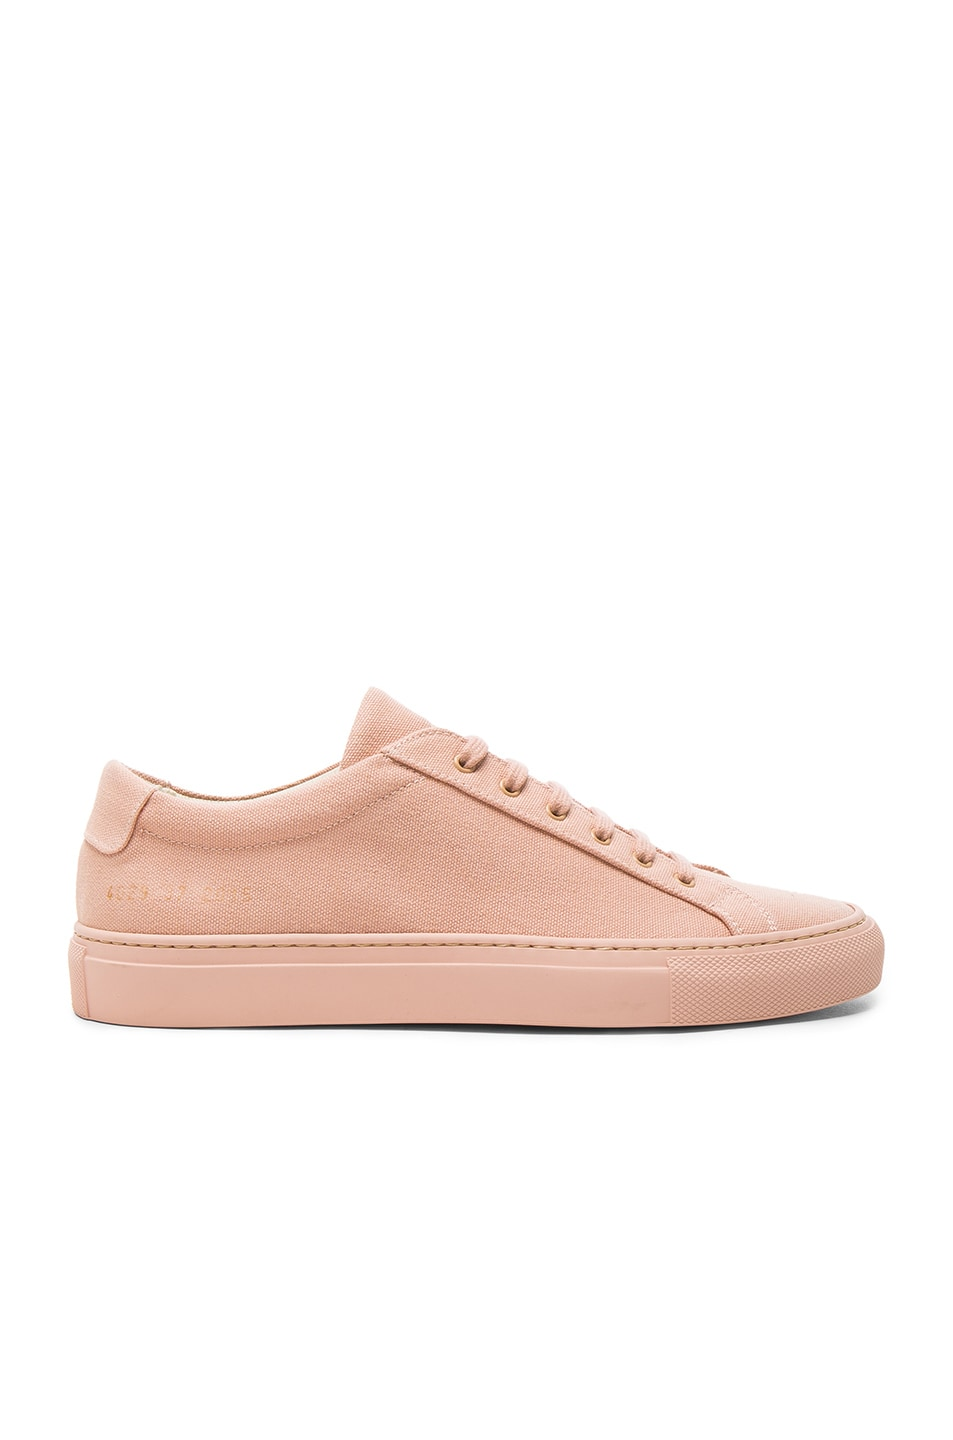 2d5755051853 Image 1 of Common Projects Canvas Achilles Low in Blush